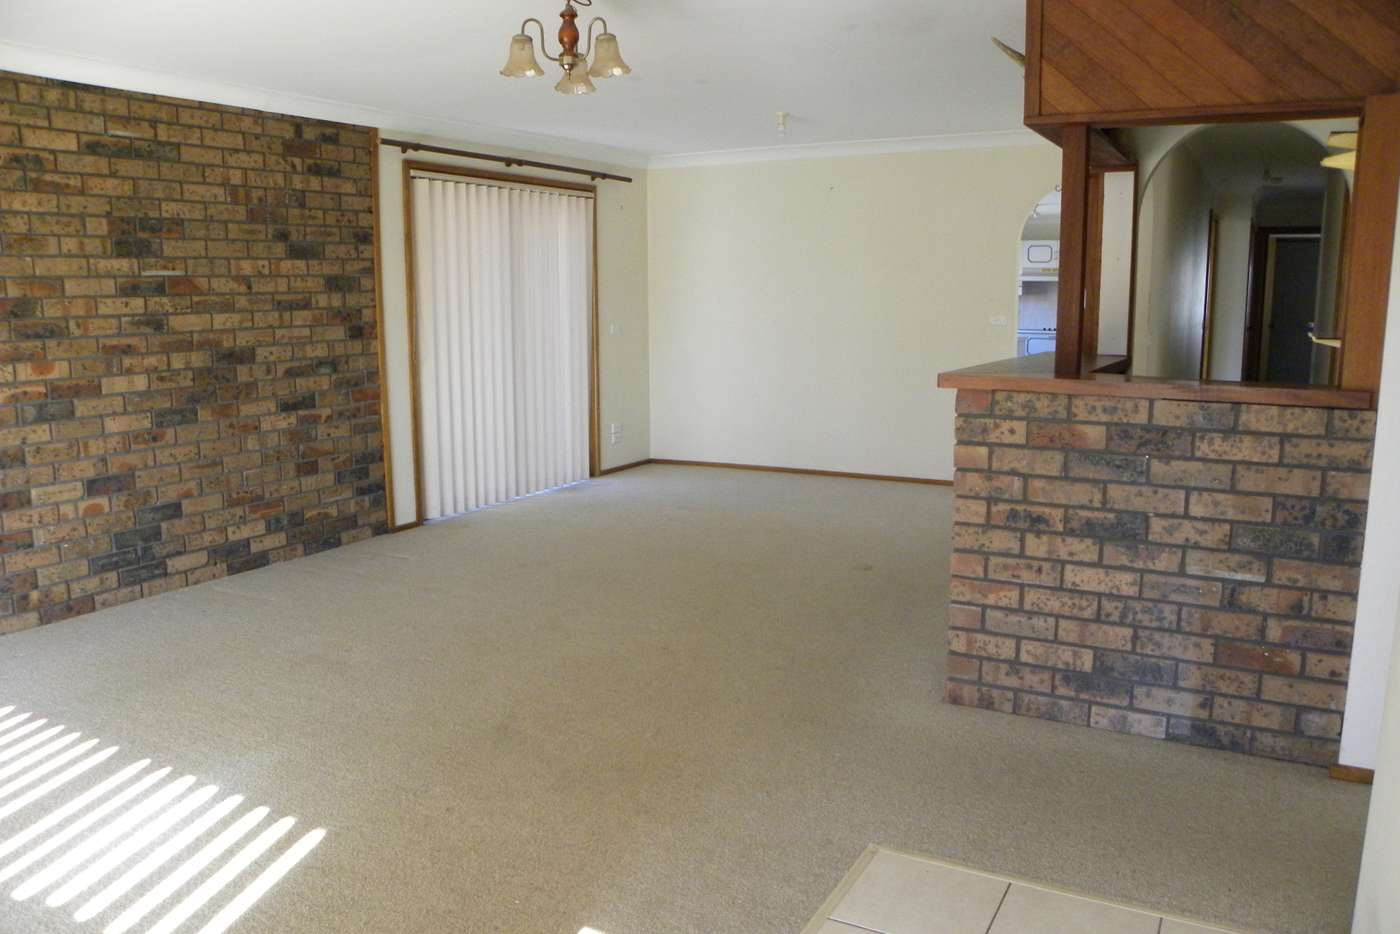 Sixth view of Homely house listing, 54 Flamingo Ave, Sanctuary Point NSW 2540